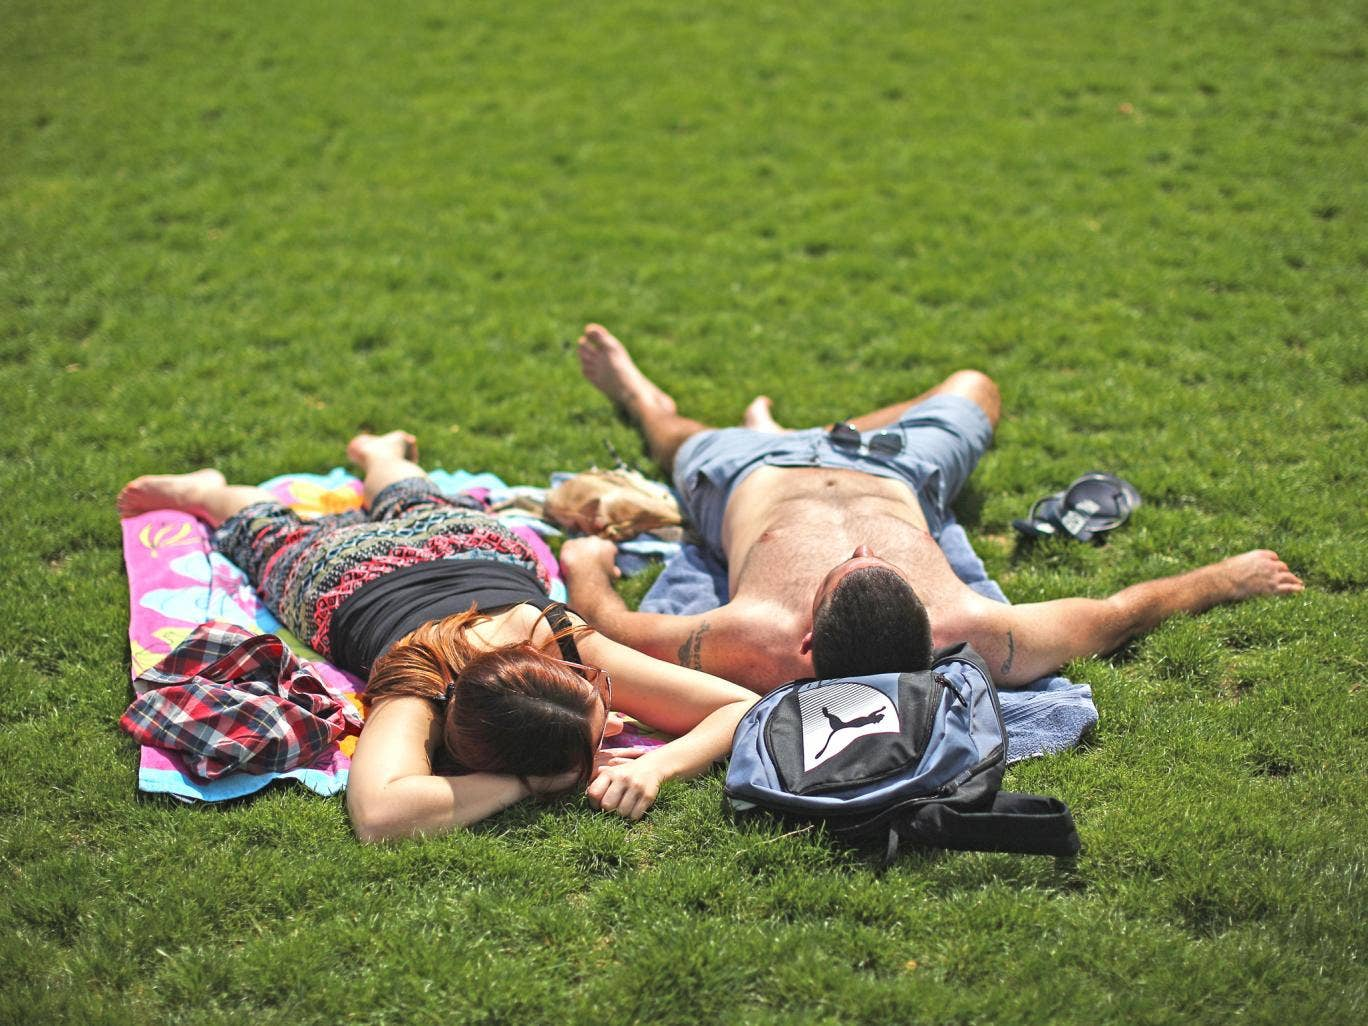 Britain experienced its third warmest spring